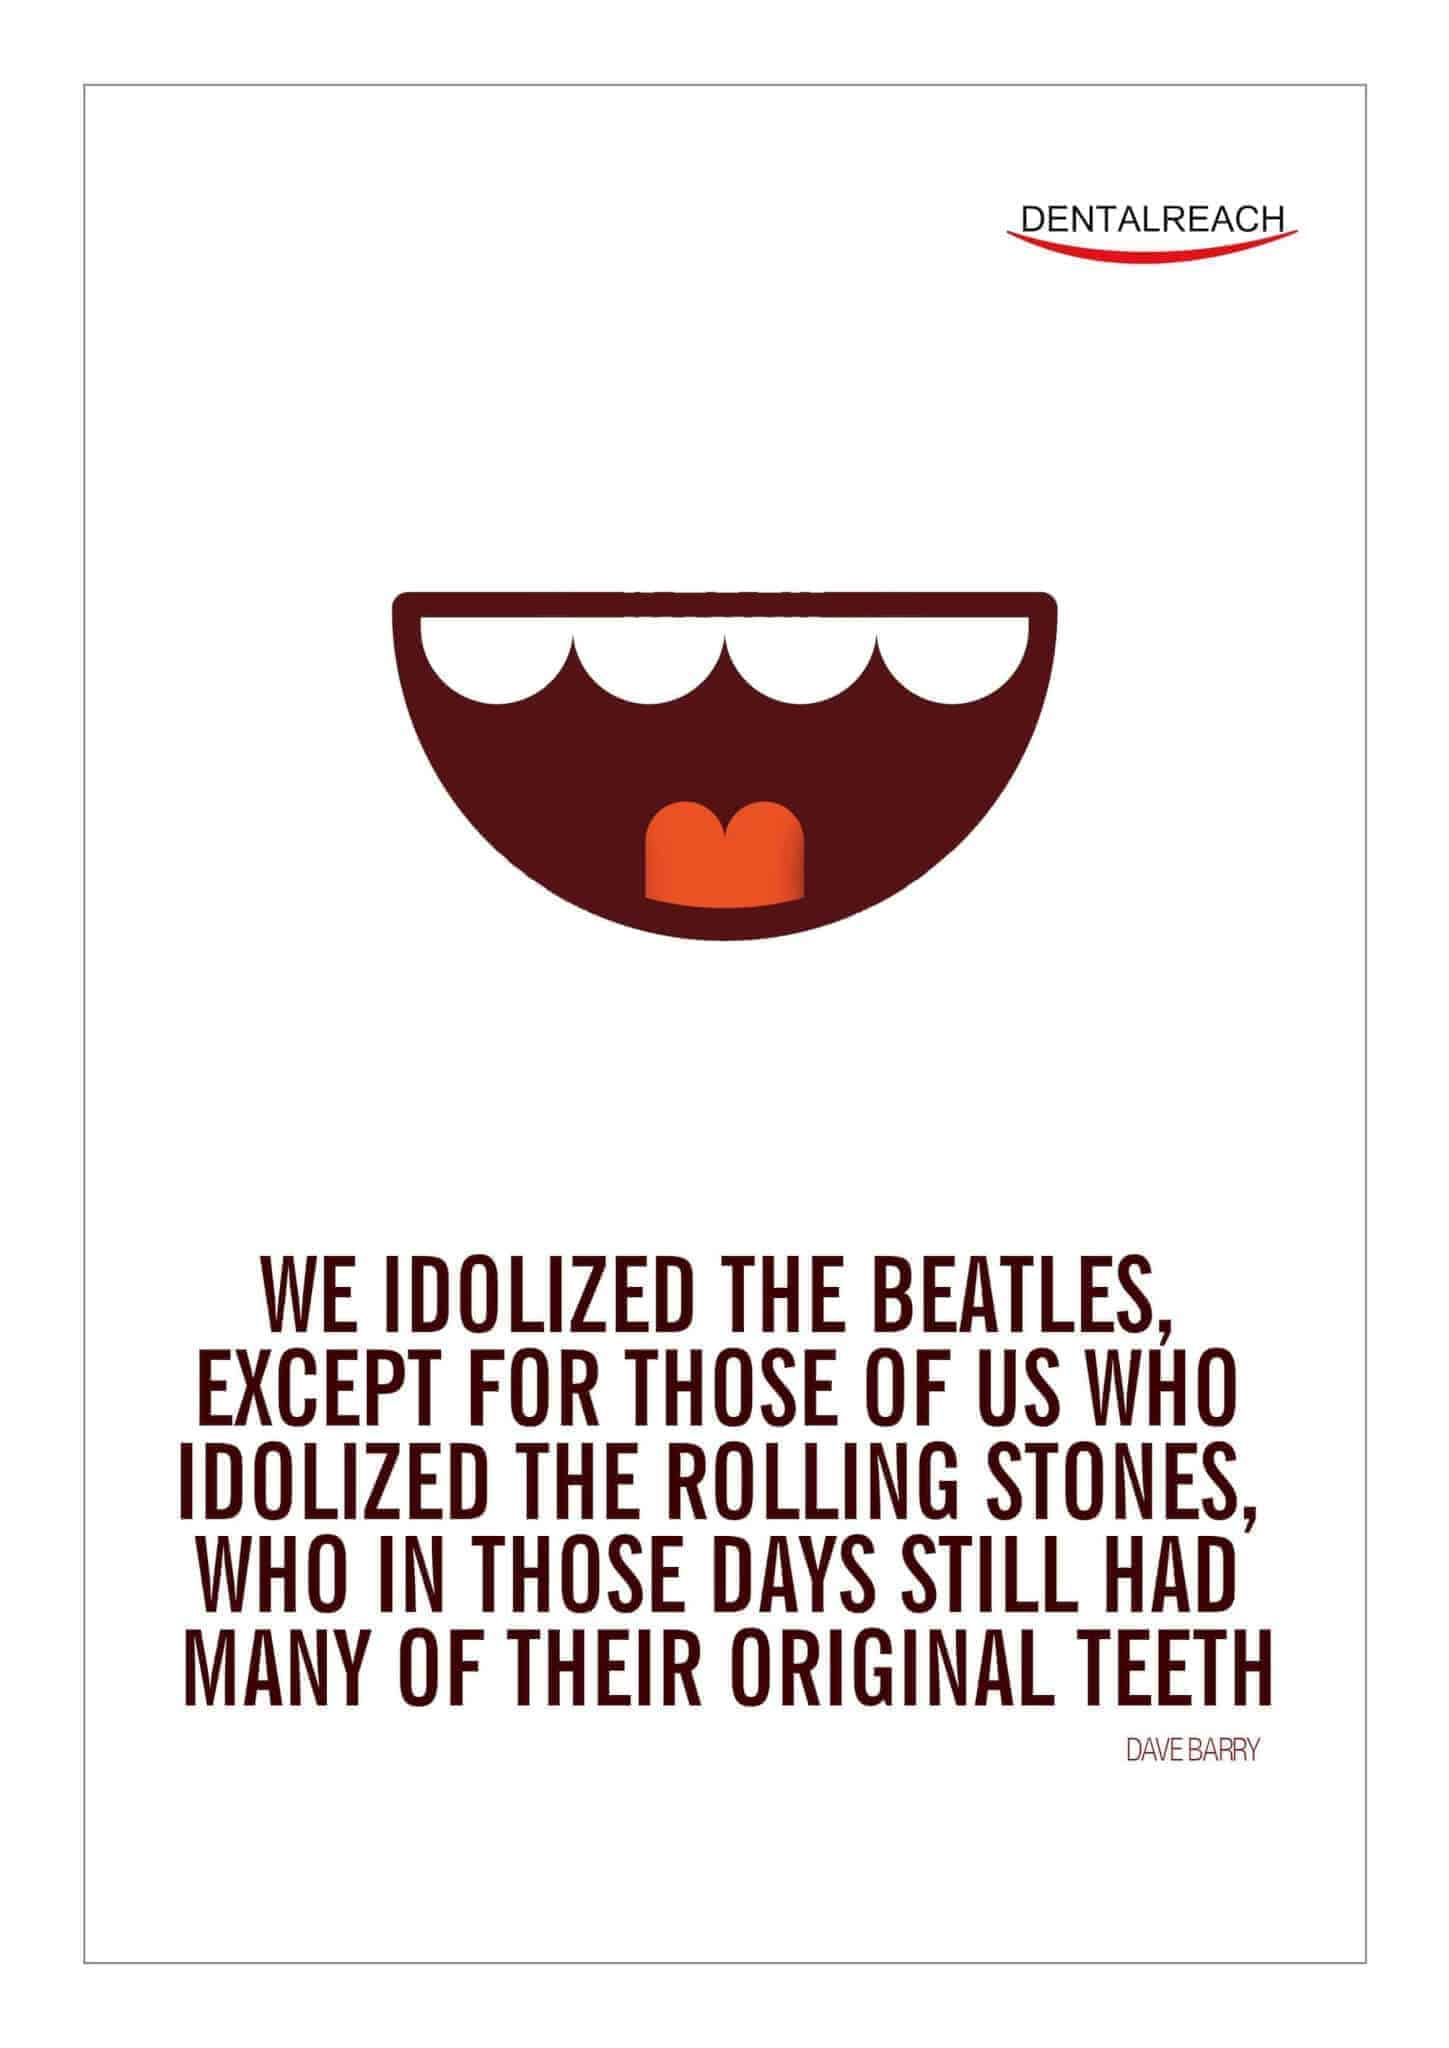 Daily quotes poster 23